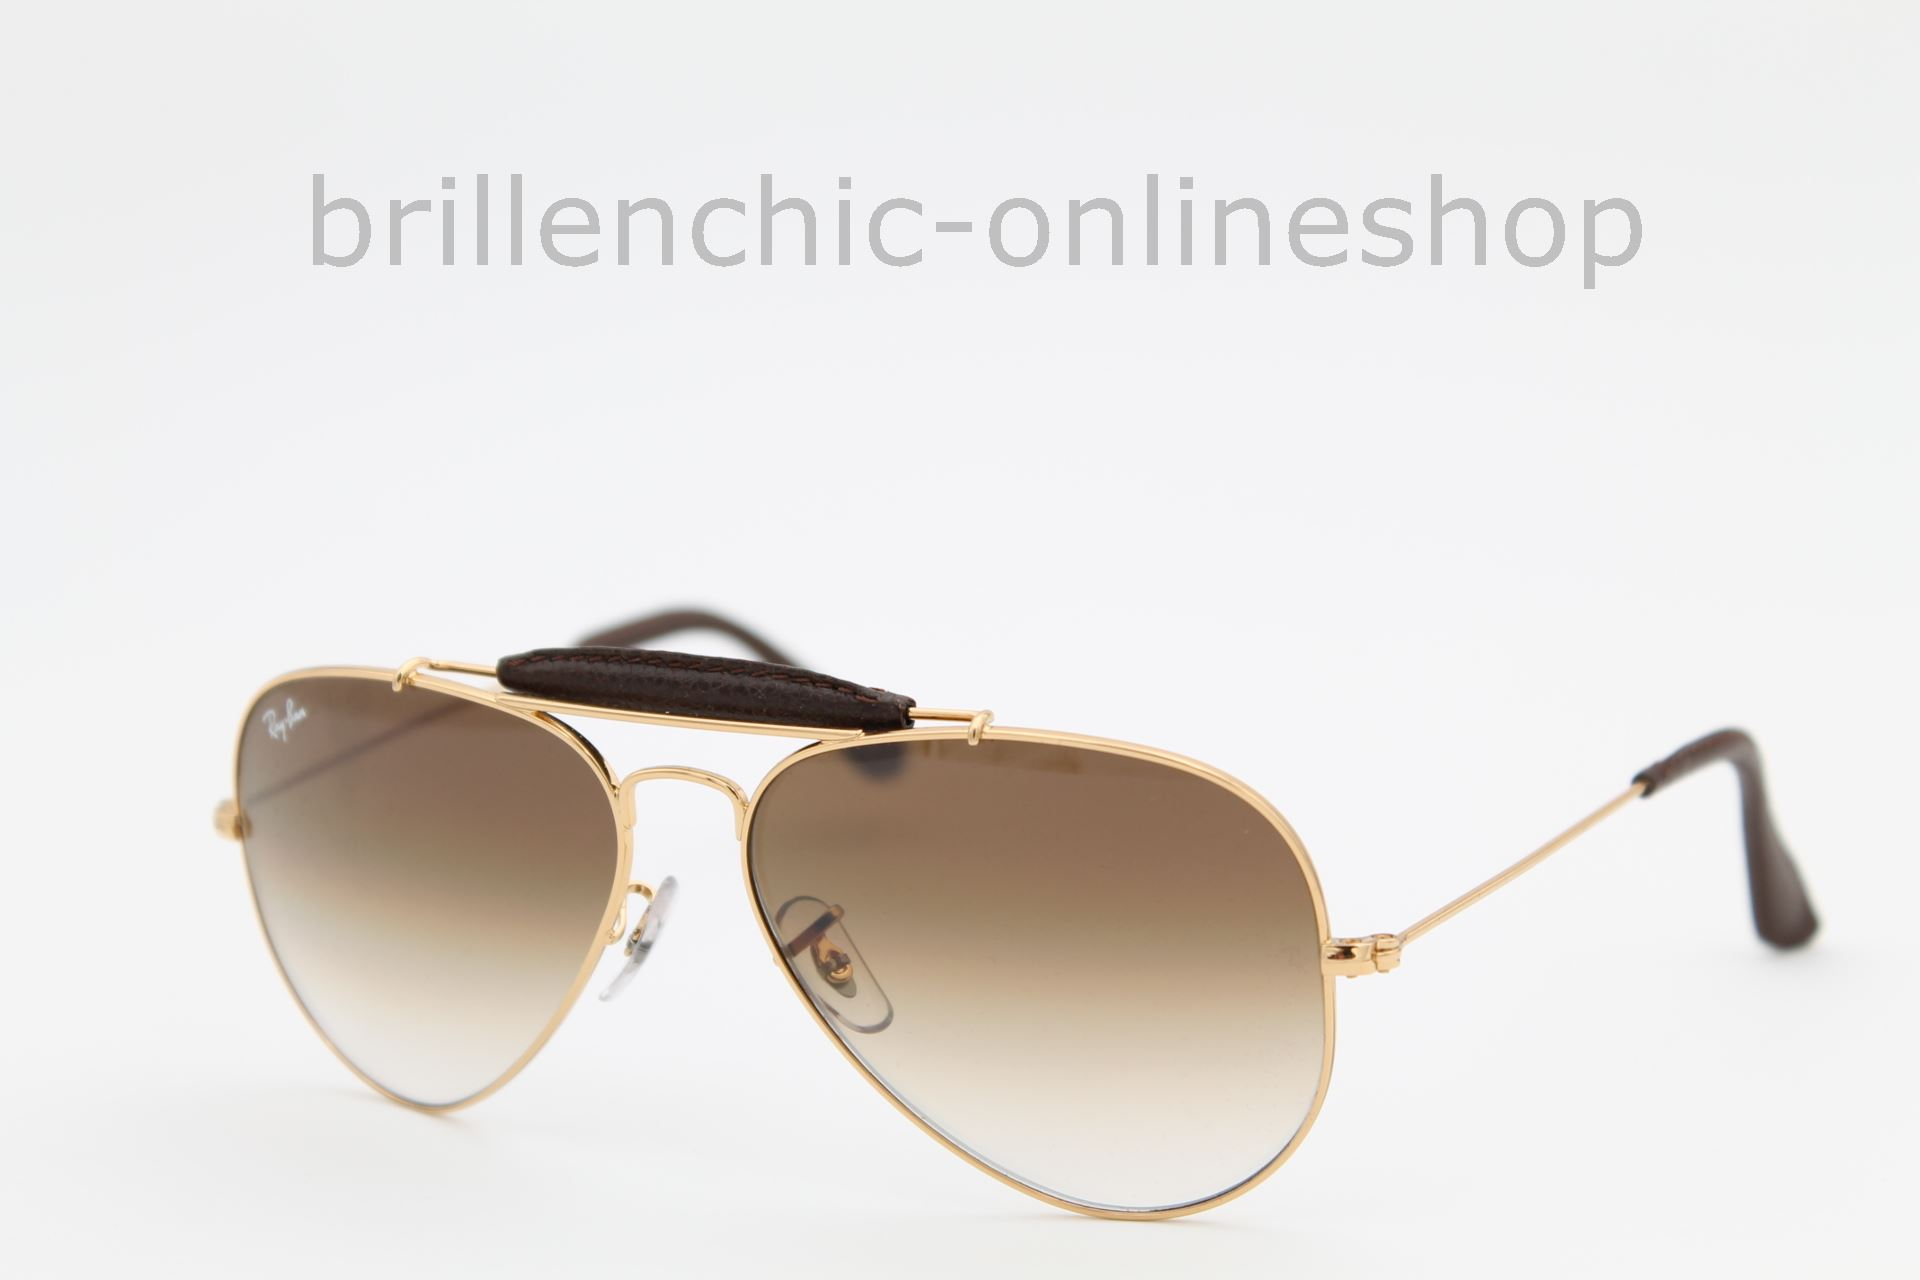 1a31becf0 Brillenchic-onlineshop in Berlin - Ray Ban AVIATOR CRAFT RB 3422Q ...